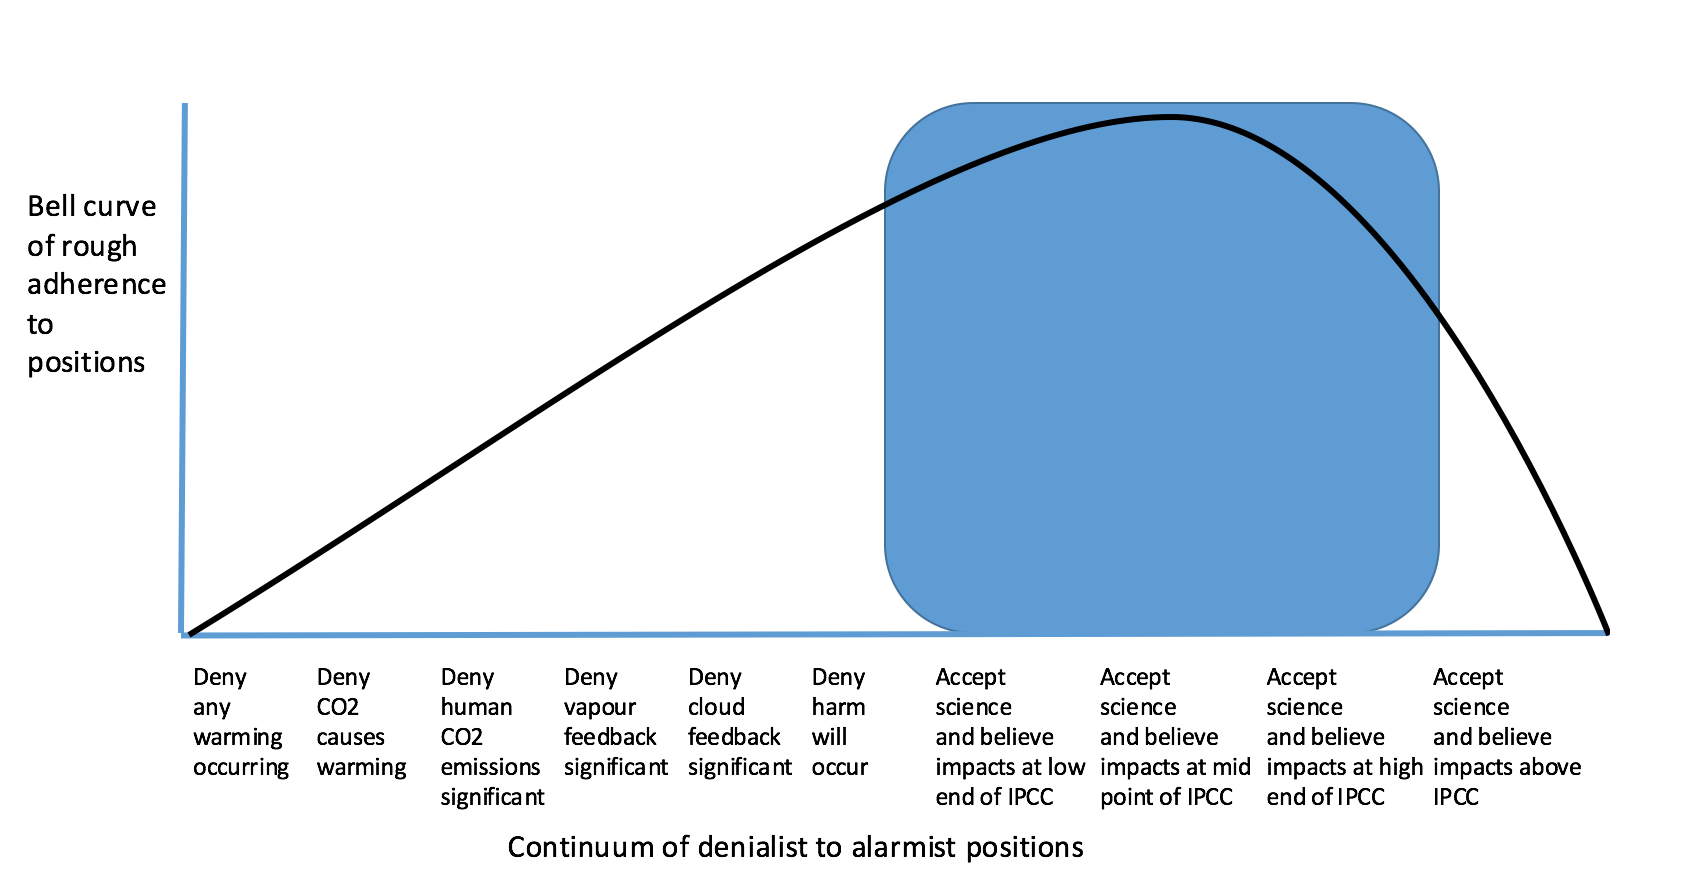 Skewed bell curve of positions related to climate change